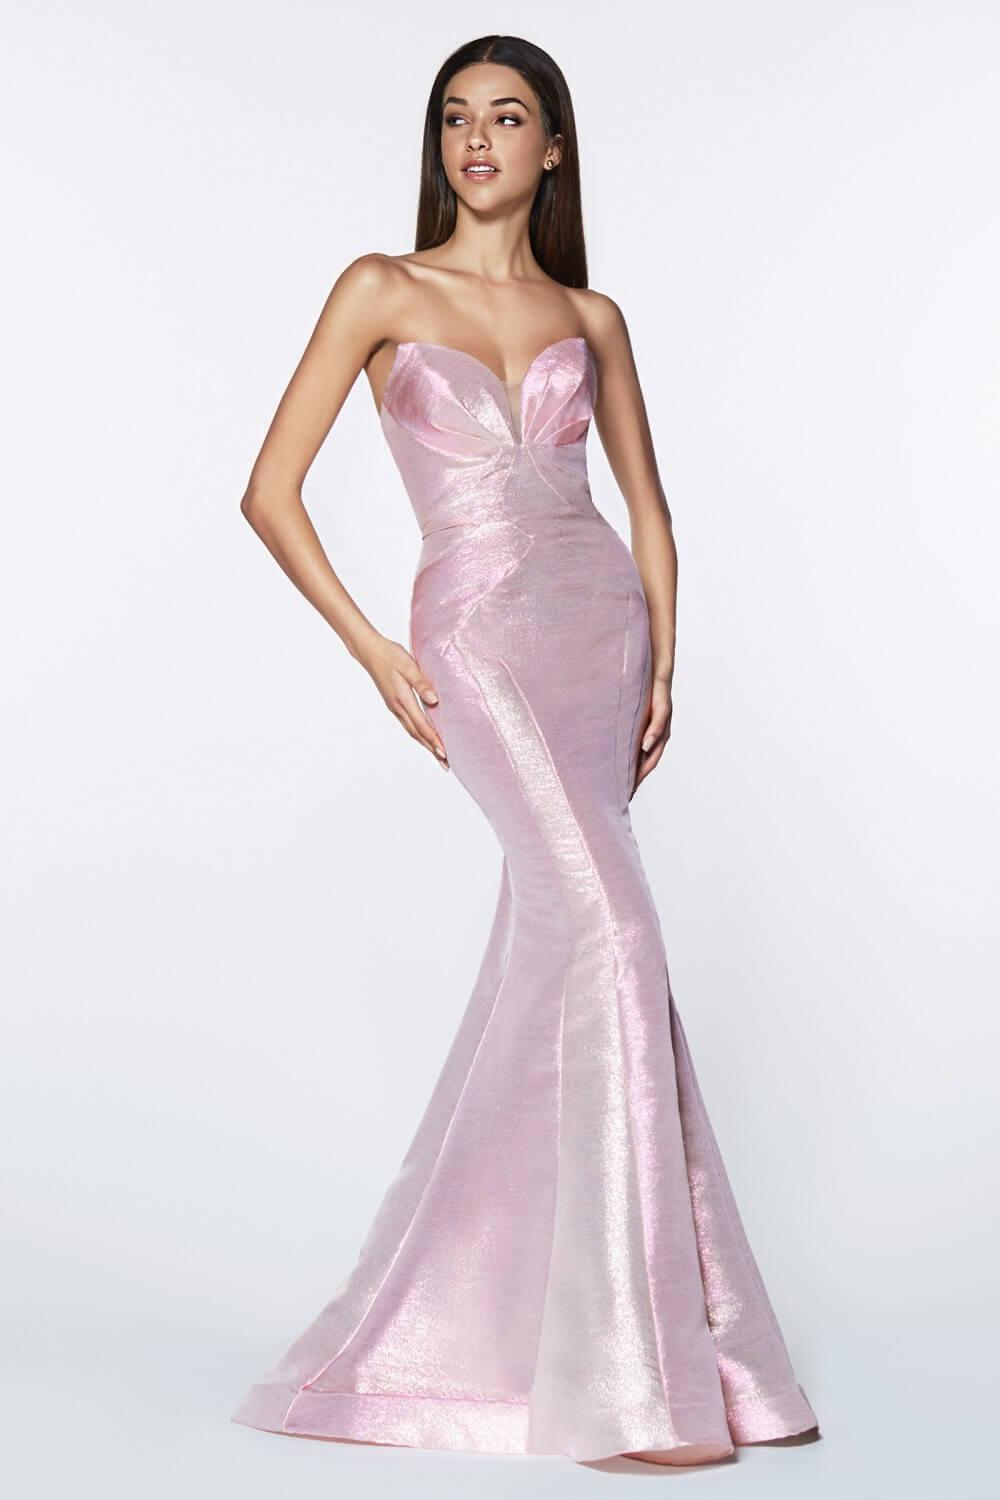 Strapless Long Metallic Mermaid Gown Prom Dress - The Dress Outlet Opal Pink Cinderella Divine